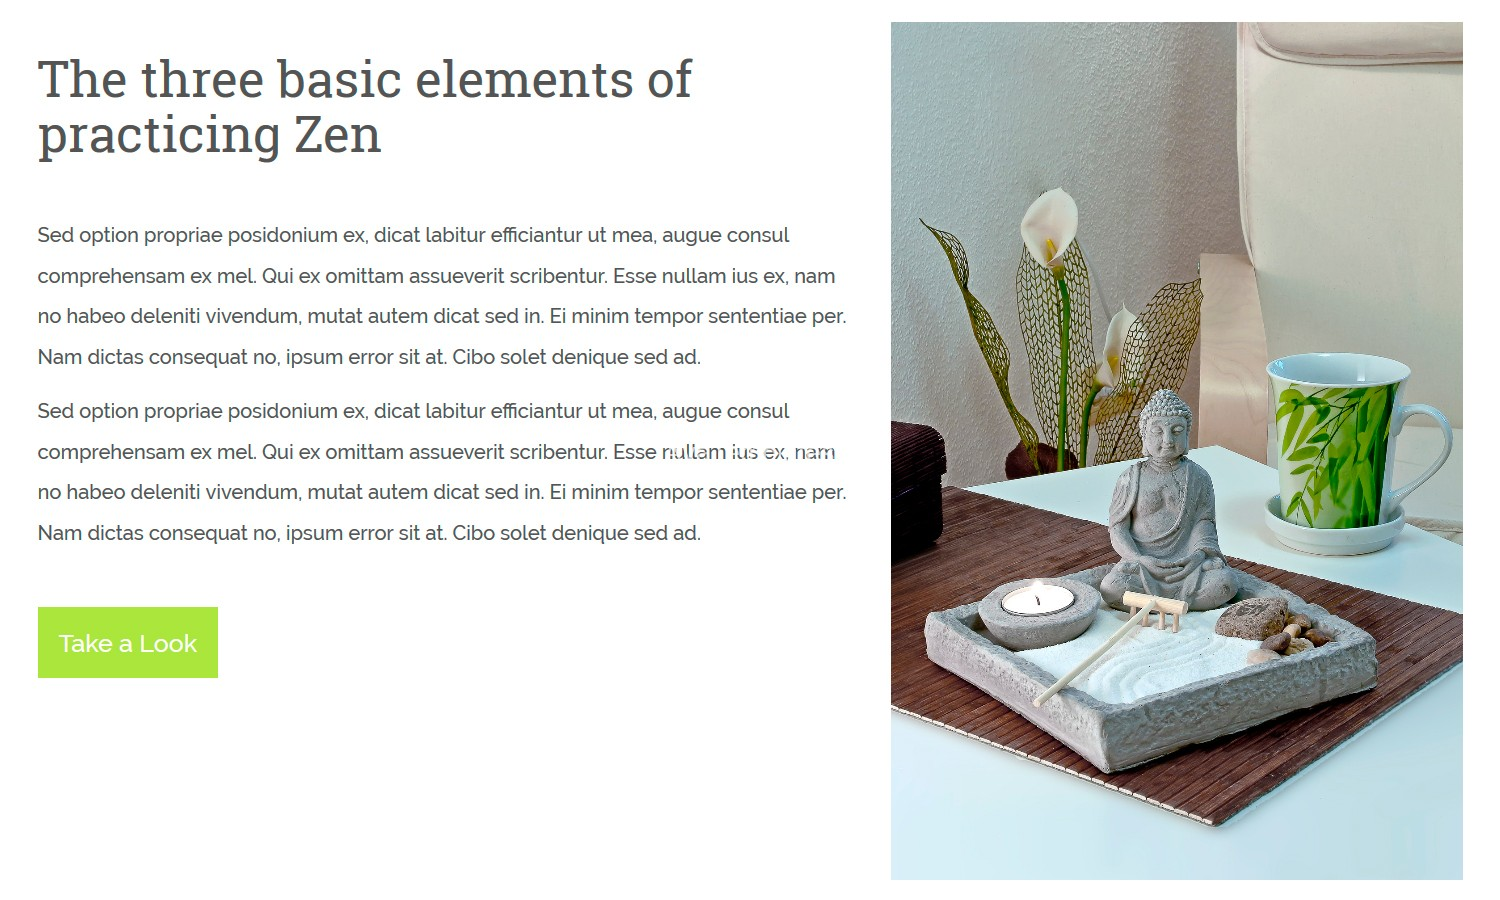 AyaZen-premium-Css-html-one-page-site-mockup3